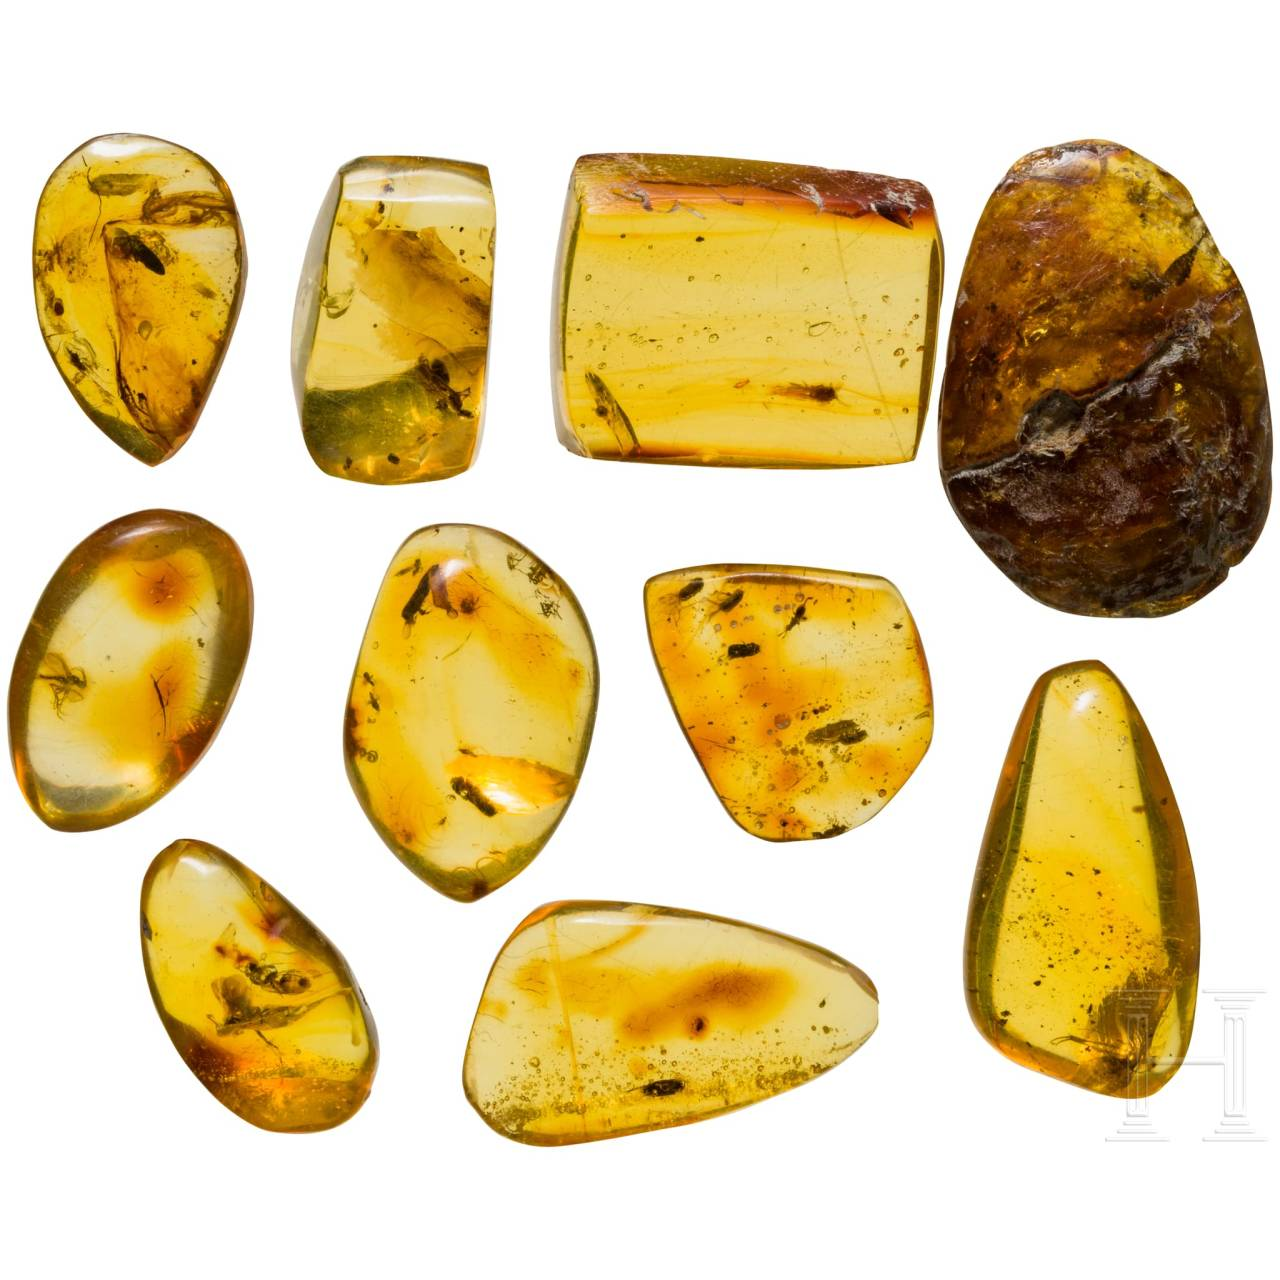 Ten amber stones with insect inclusions